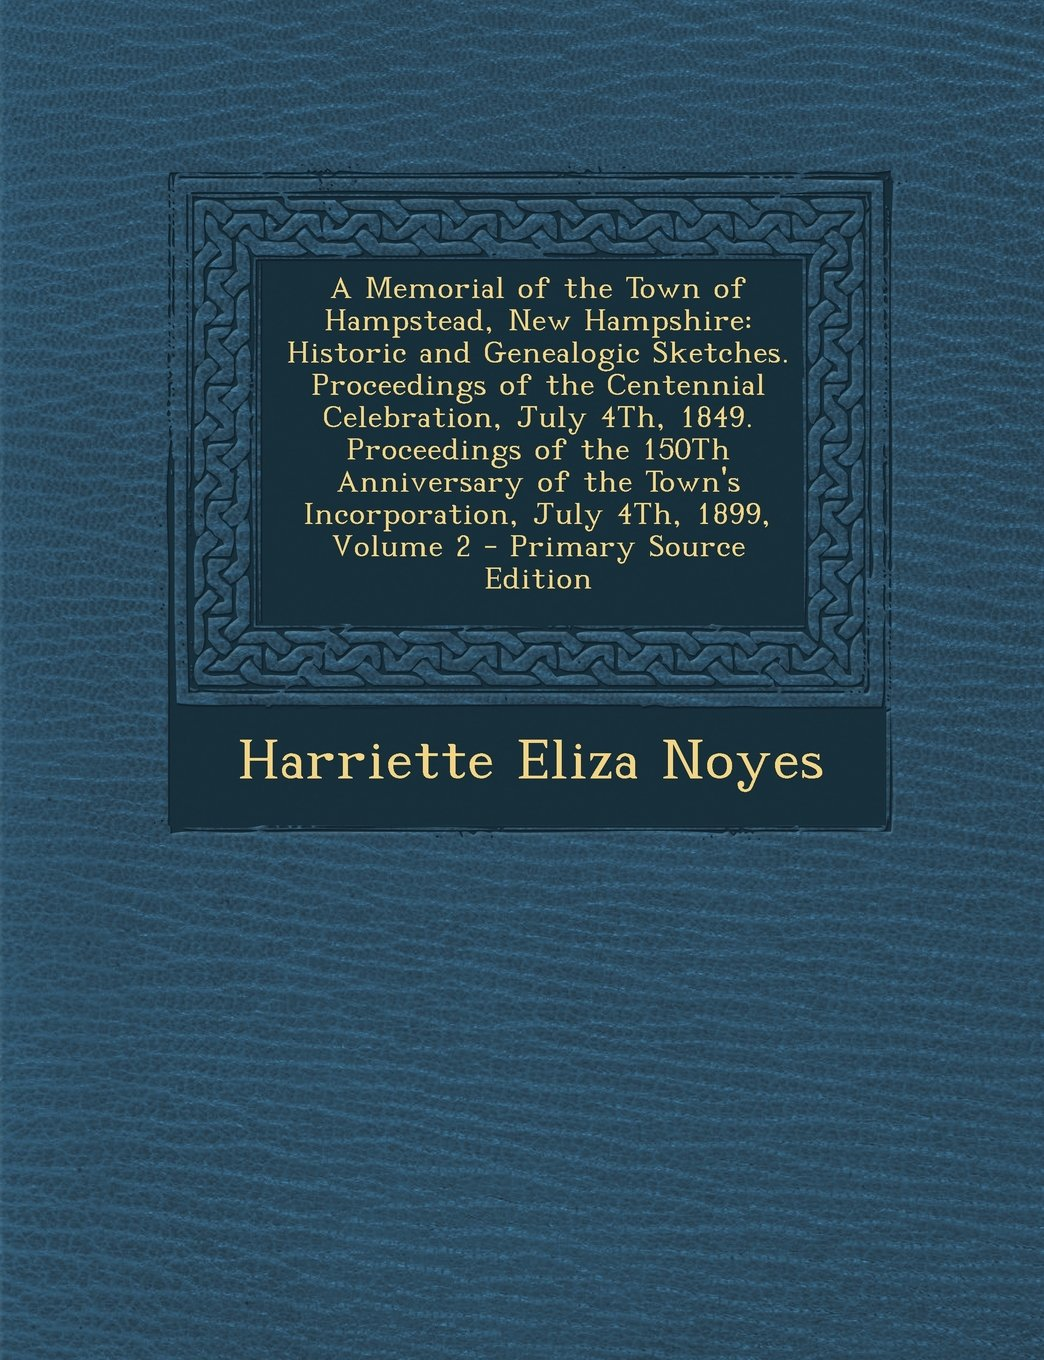 A   Memorial of the Town of Hampstead, New Hampshire: Historic and Genealogic Sketches. Proceedings of the Centennial Celebration, July 4th, 1849. Pro pdf